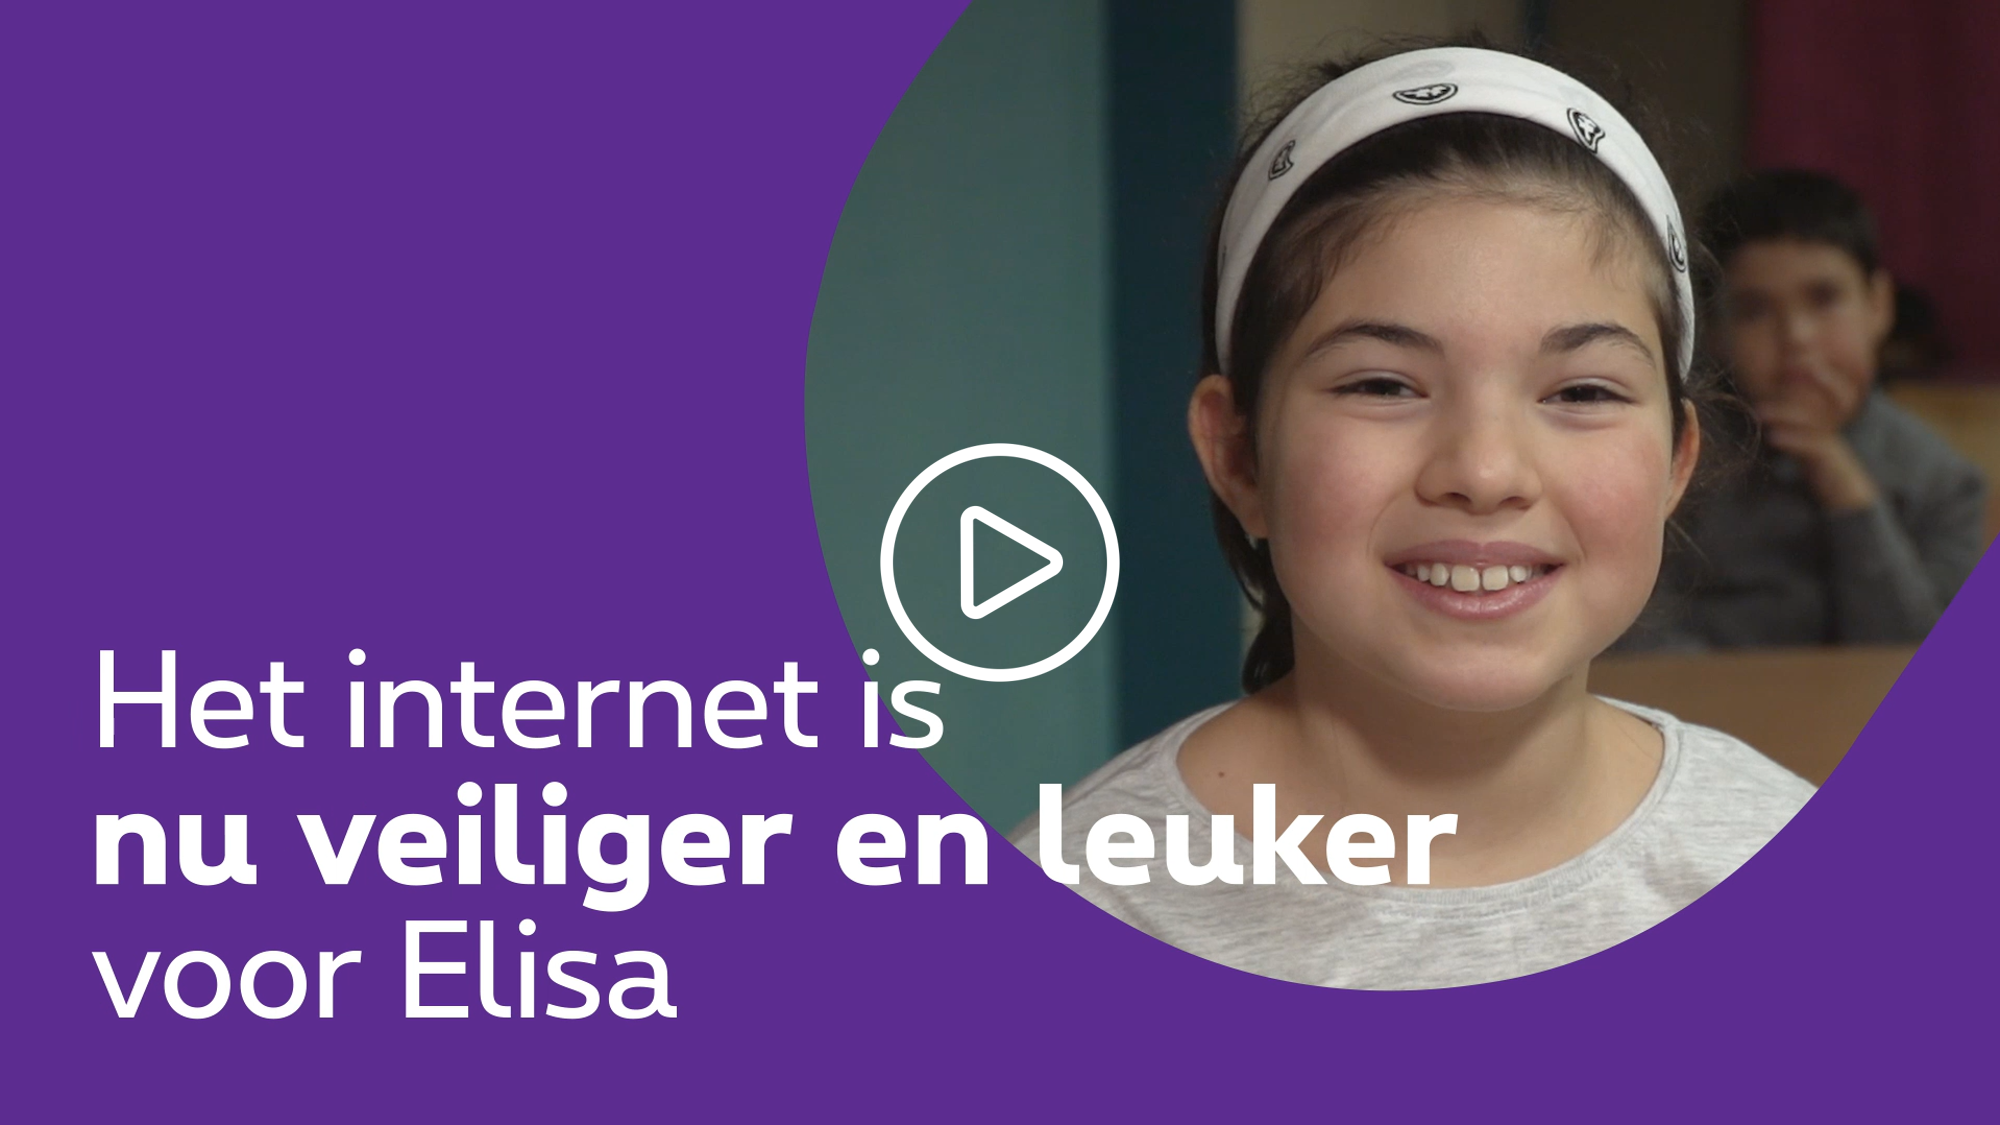 Internet is now safe and fun for Elisa - click to discover the video